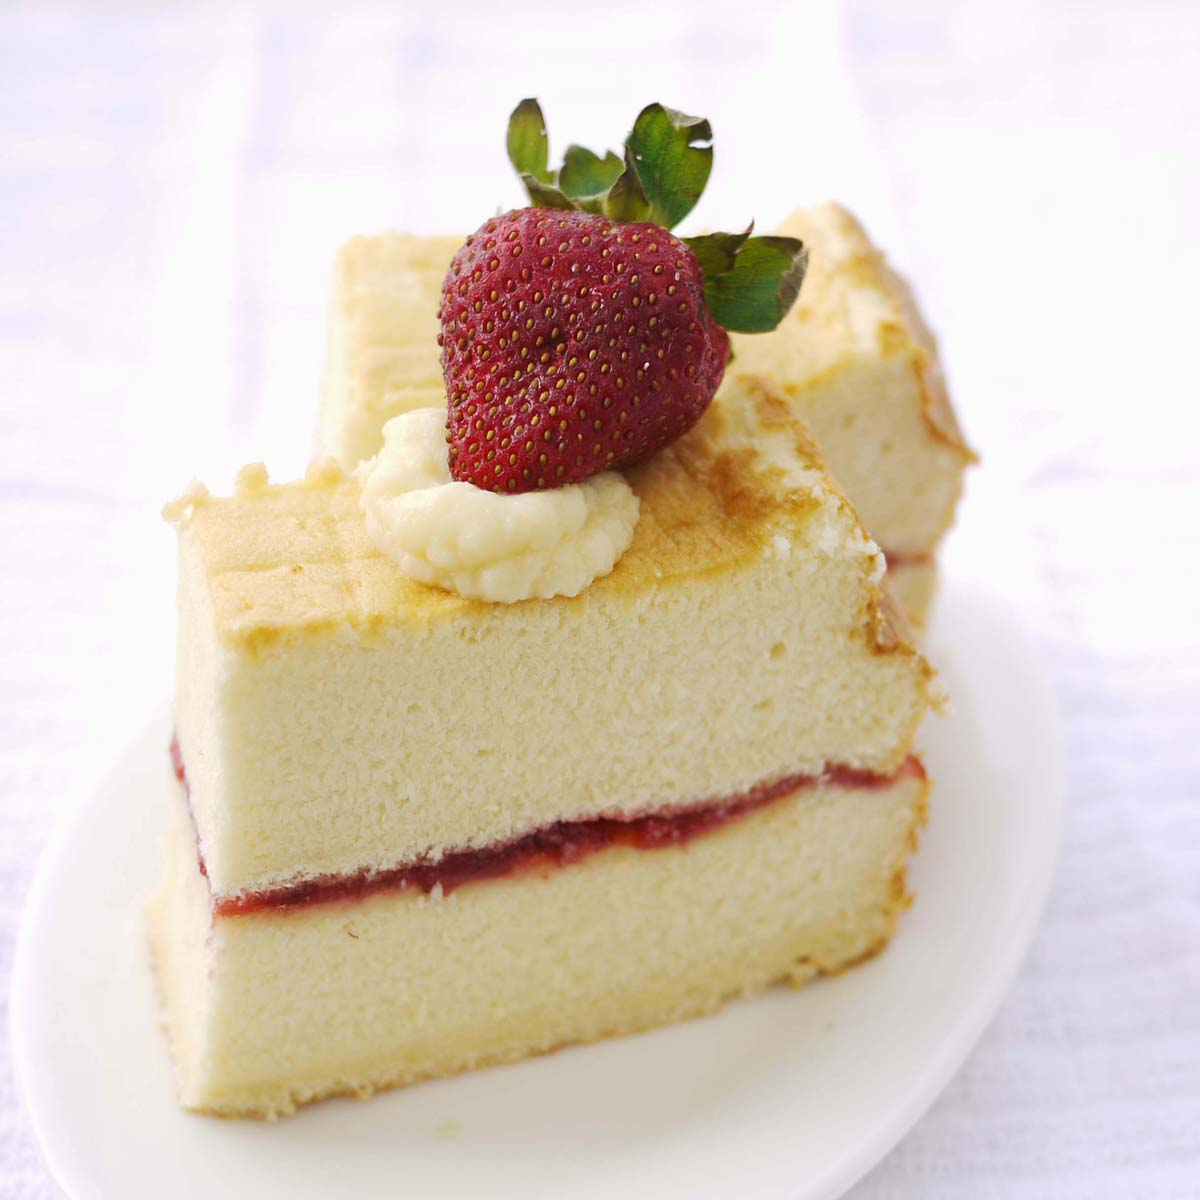 Sponge Cake With Fruit And Cream